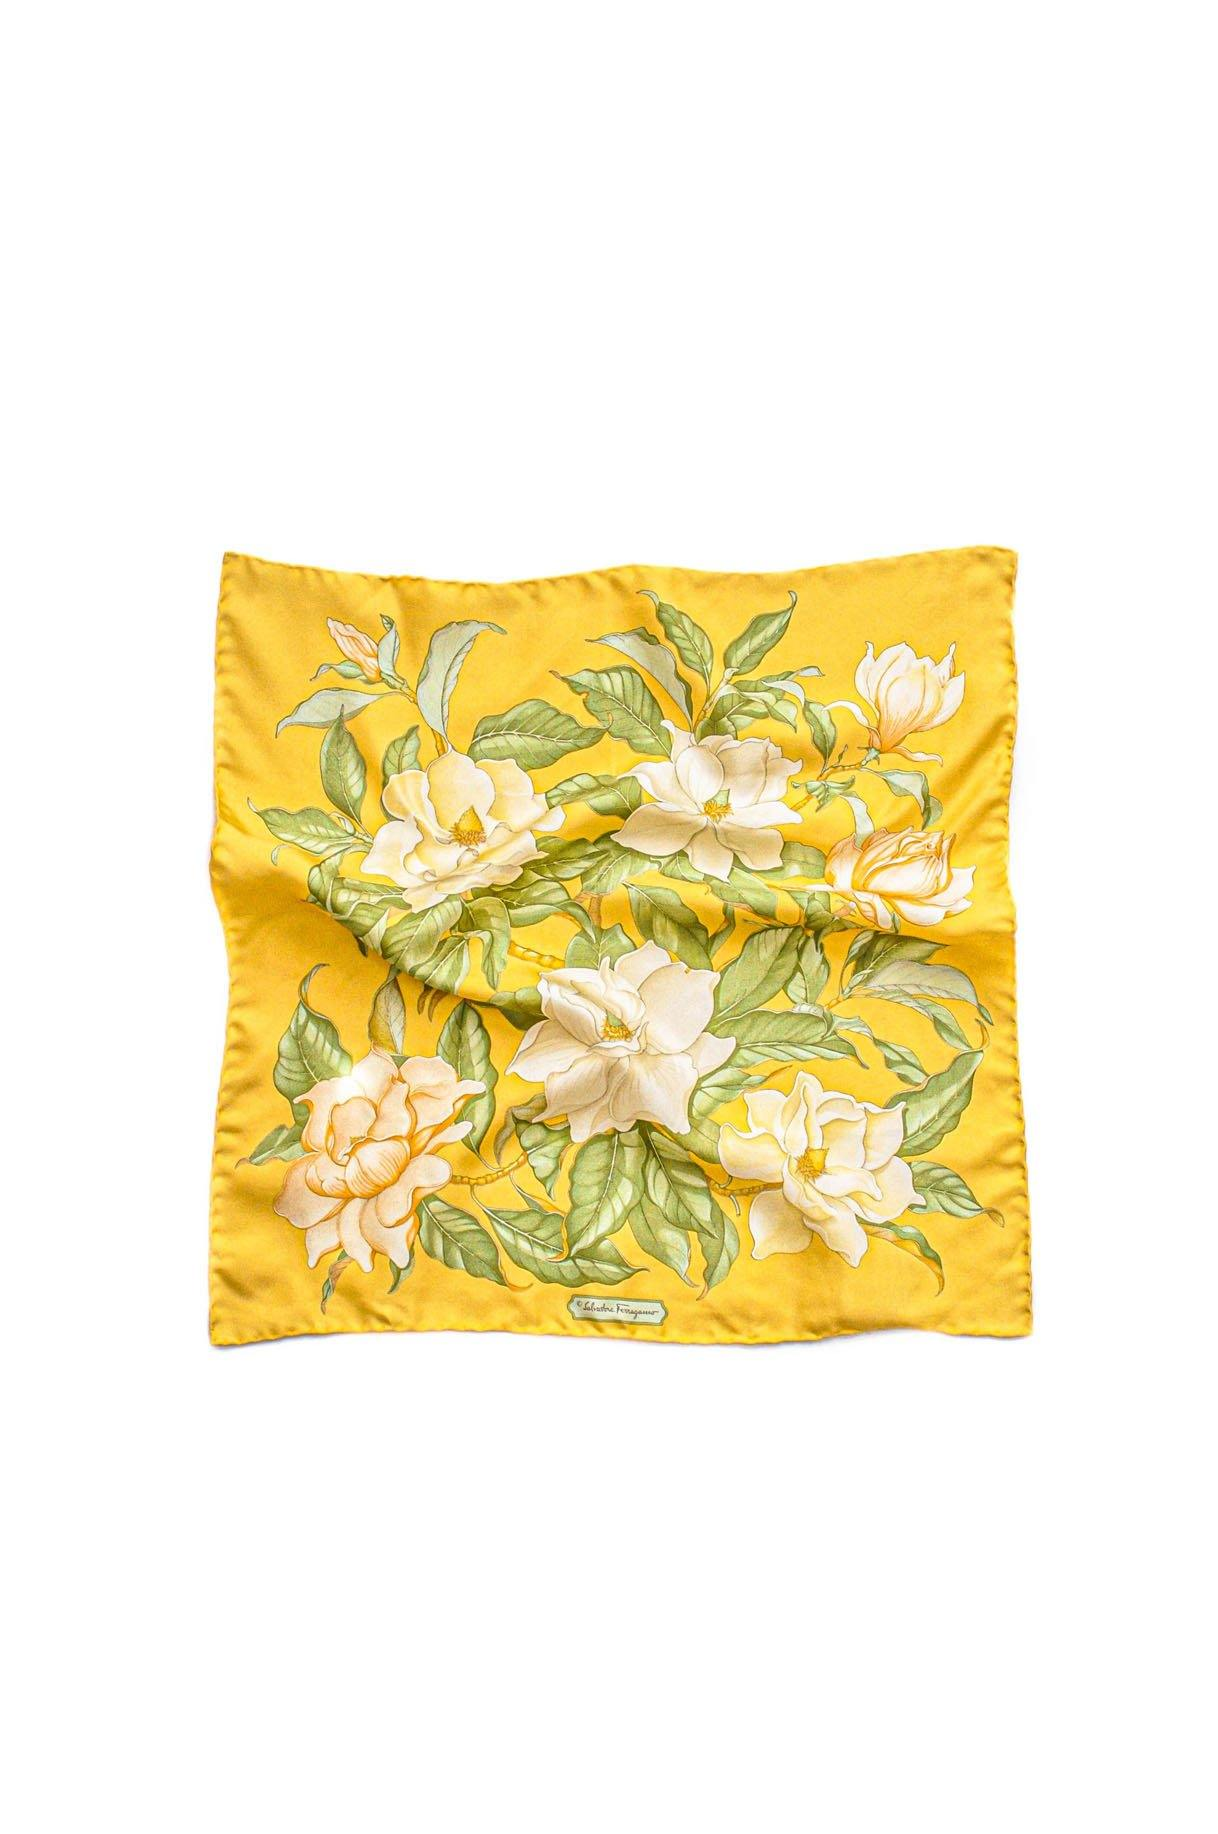 Vintage Ferragamo Yellow Florals Scarf from Sweet & Spark.